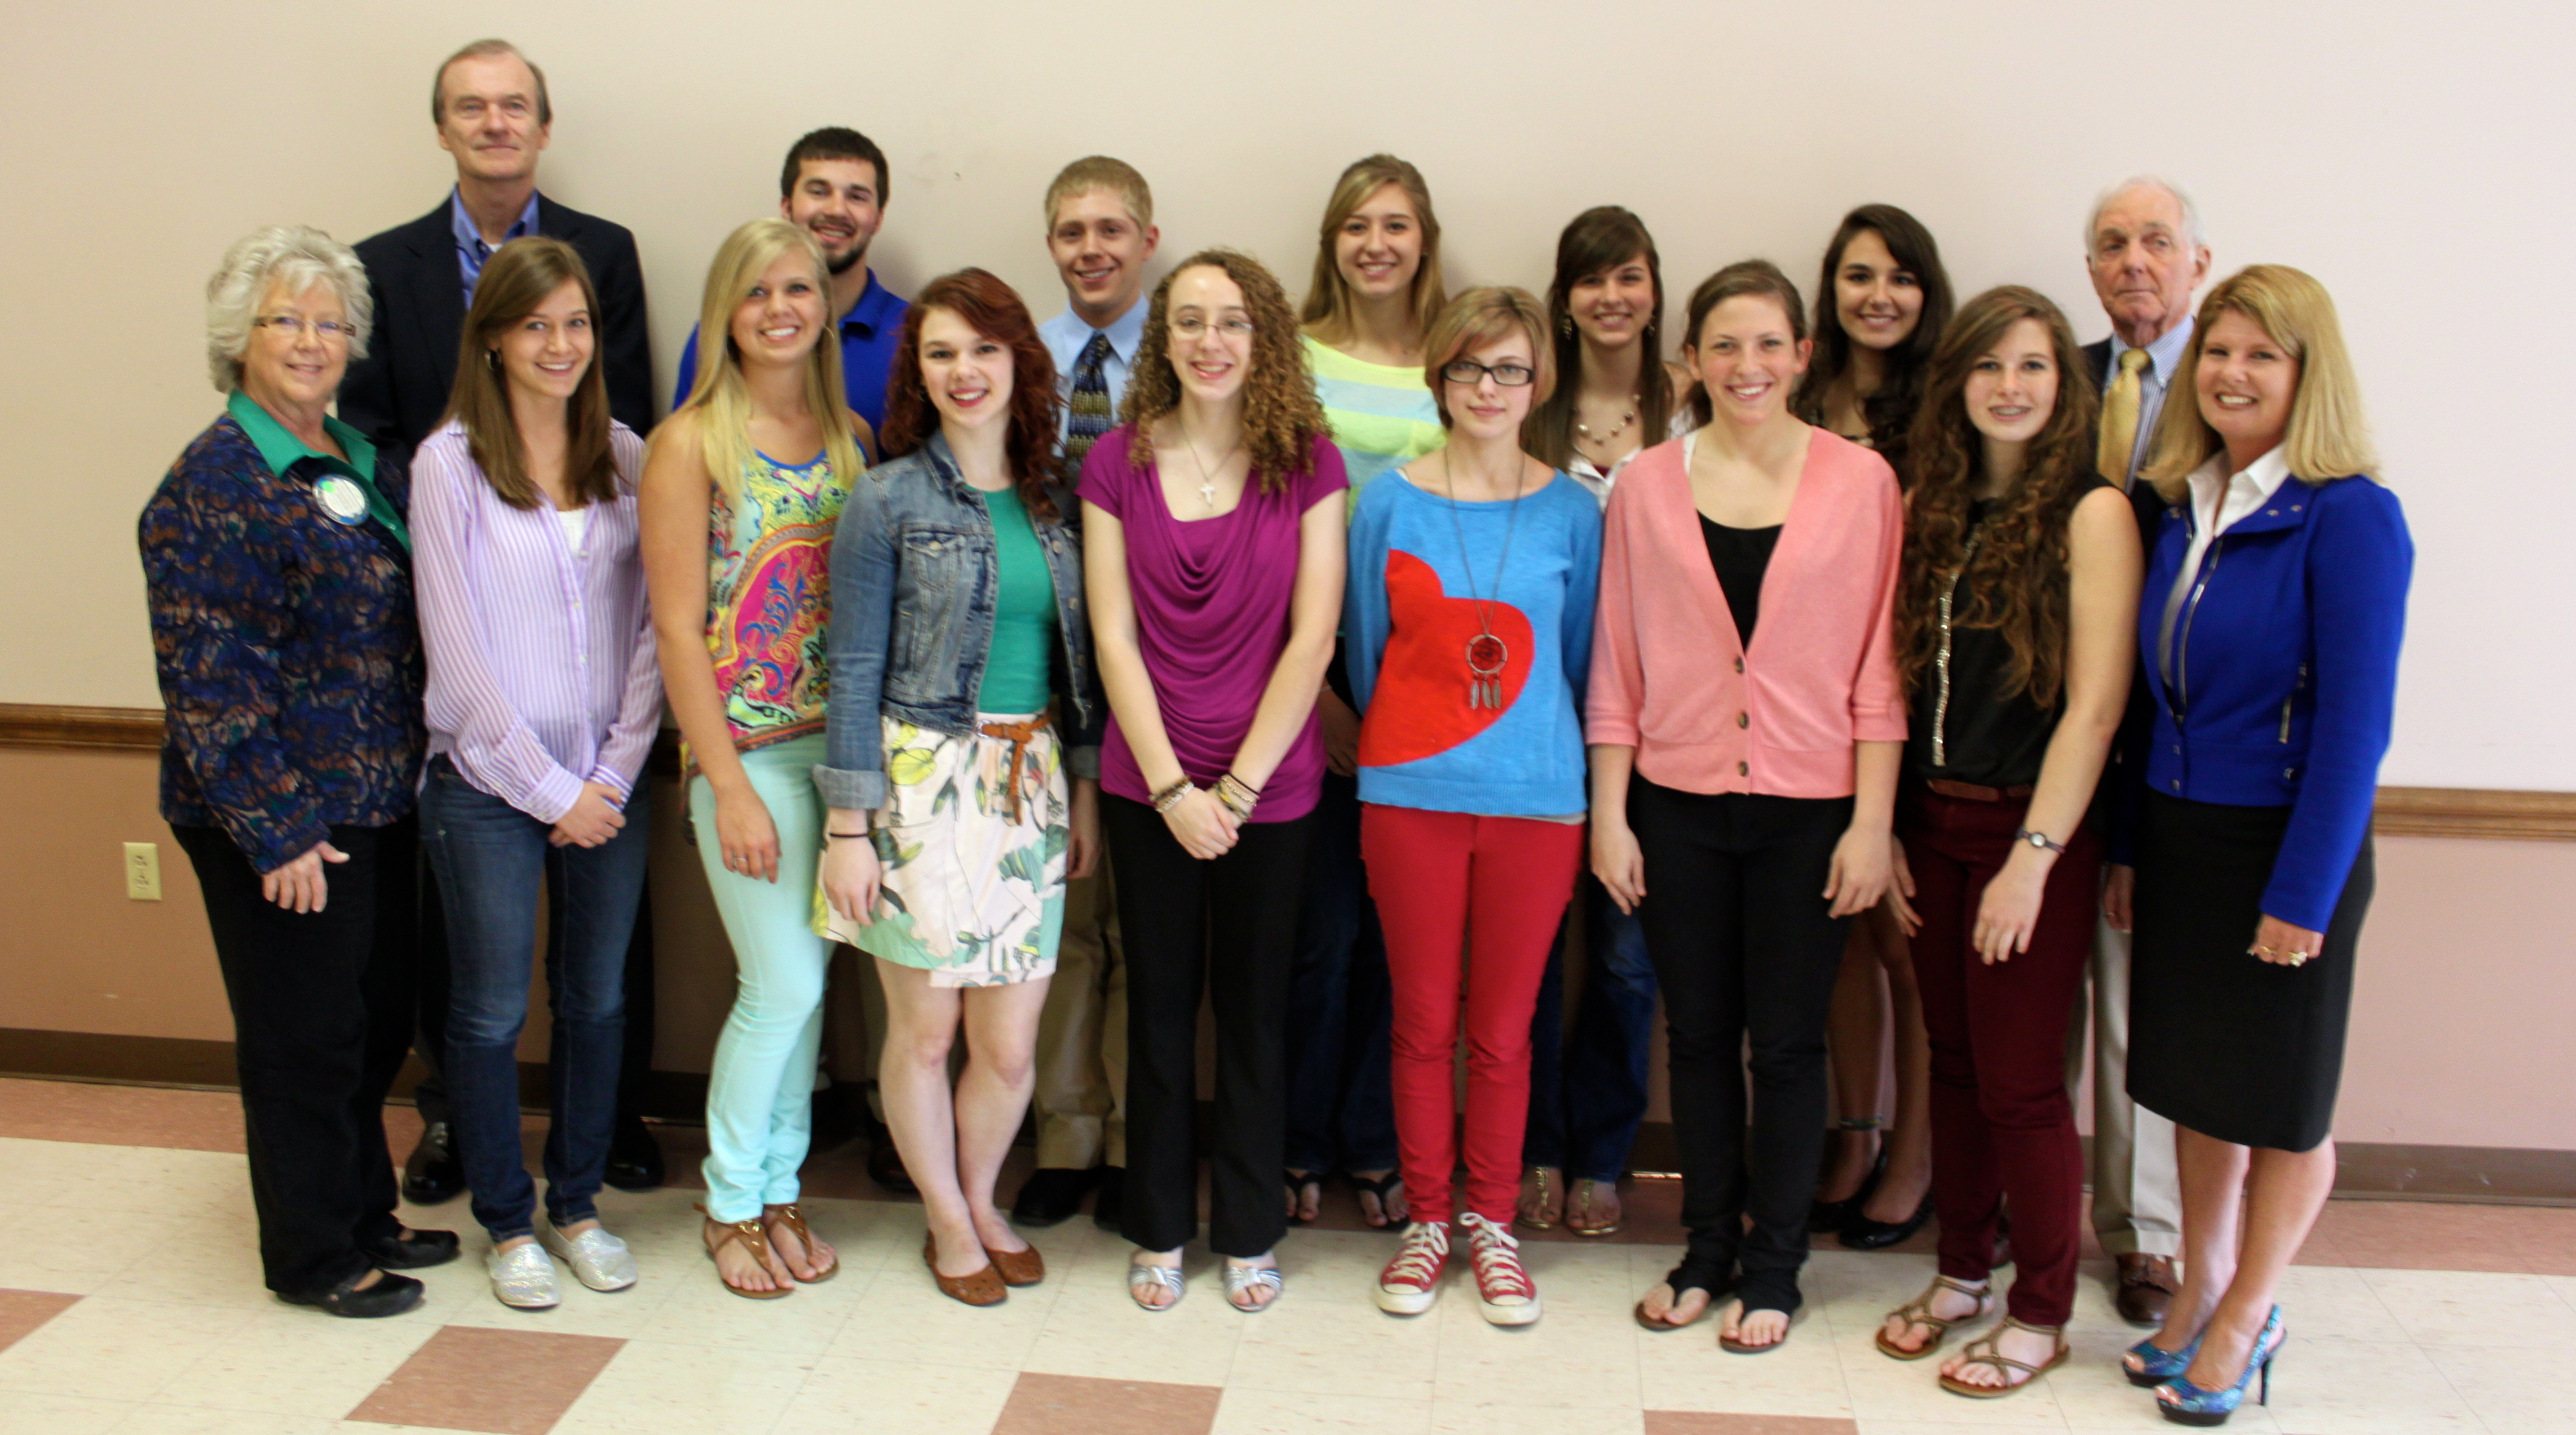 clarion county students earn rotary scholarships com twelve clarion county high school juniors have been awarded scholarships to the 2013 rotary youth leadership awards ryla conference to be held at